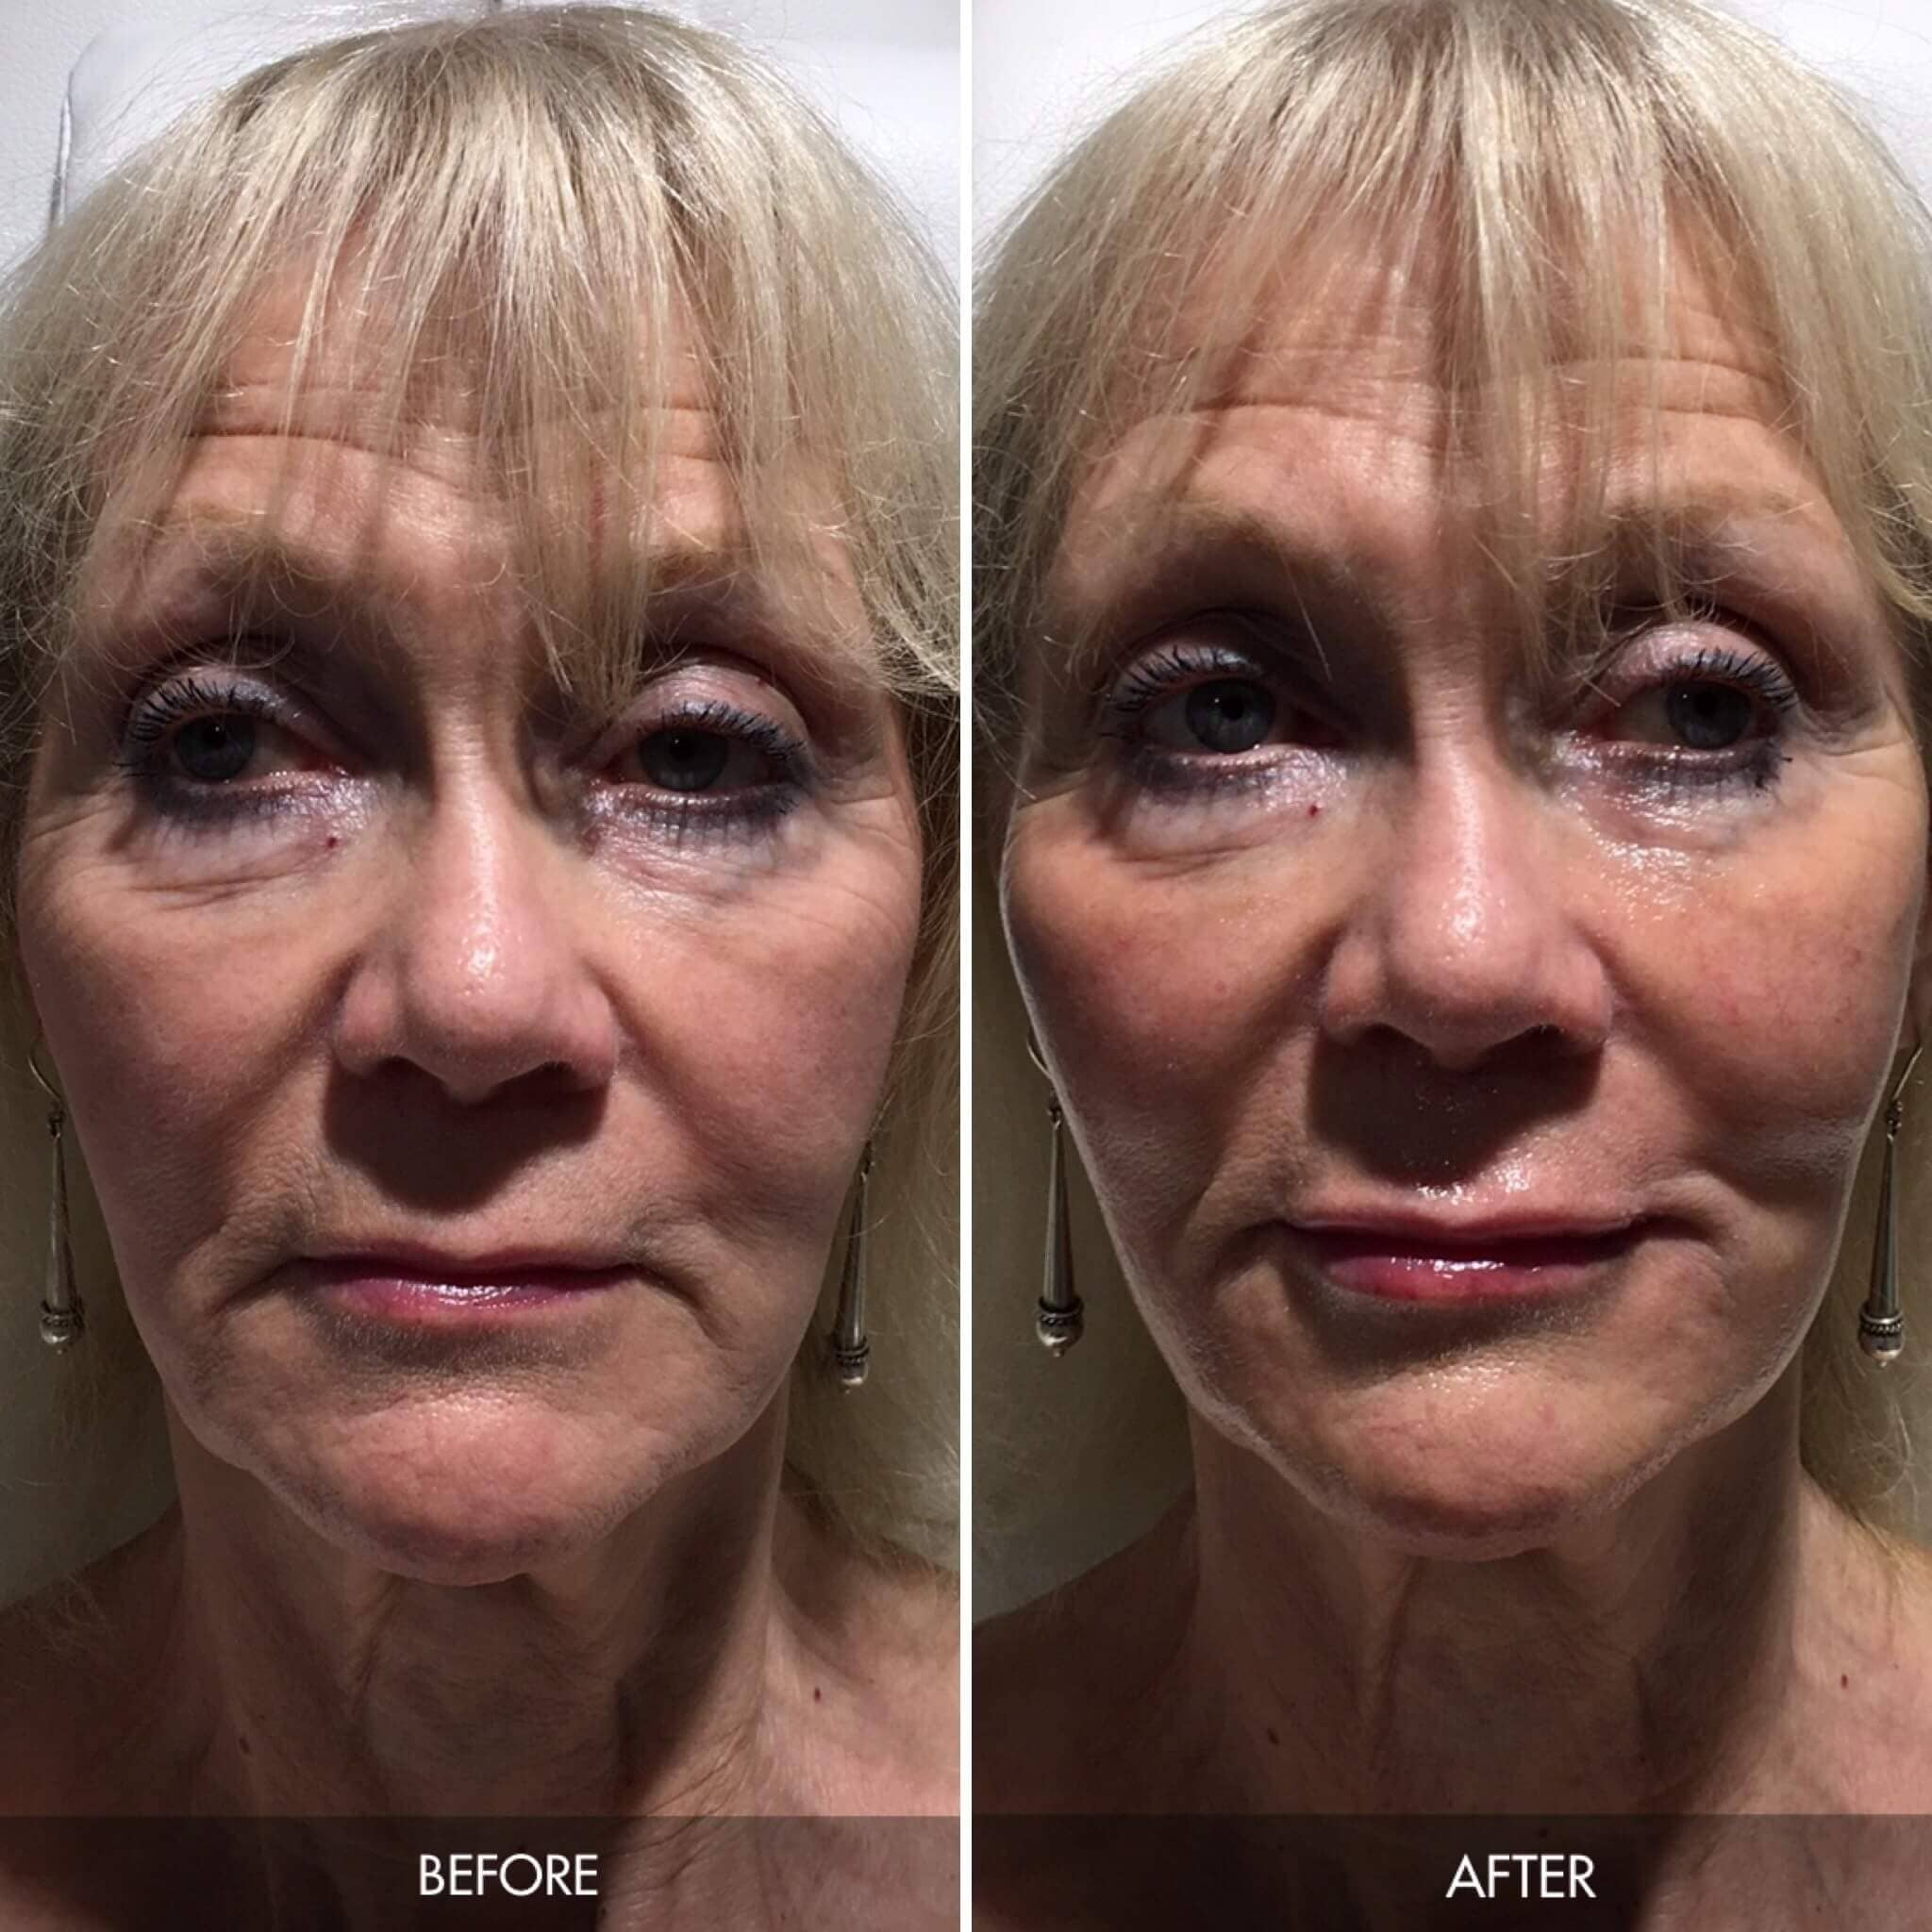 Our treatment results – Patient's before and after photos